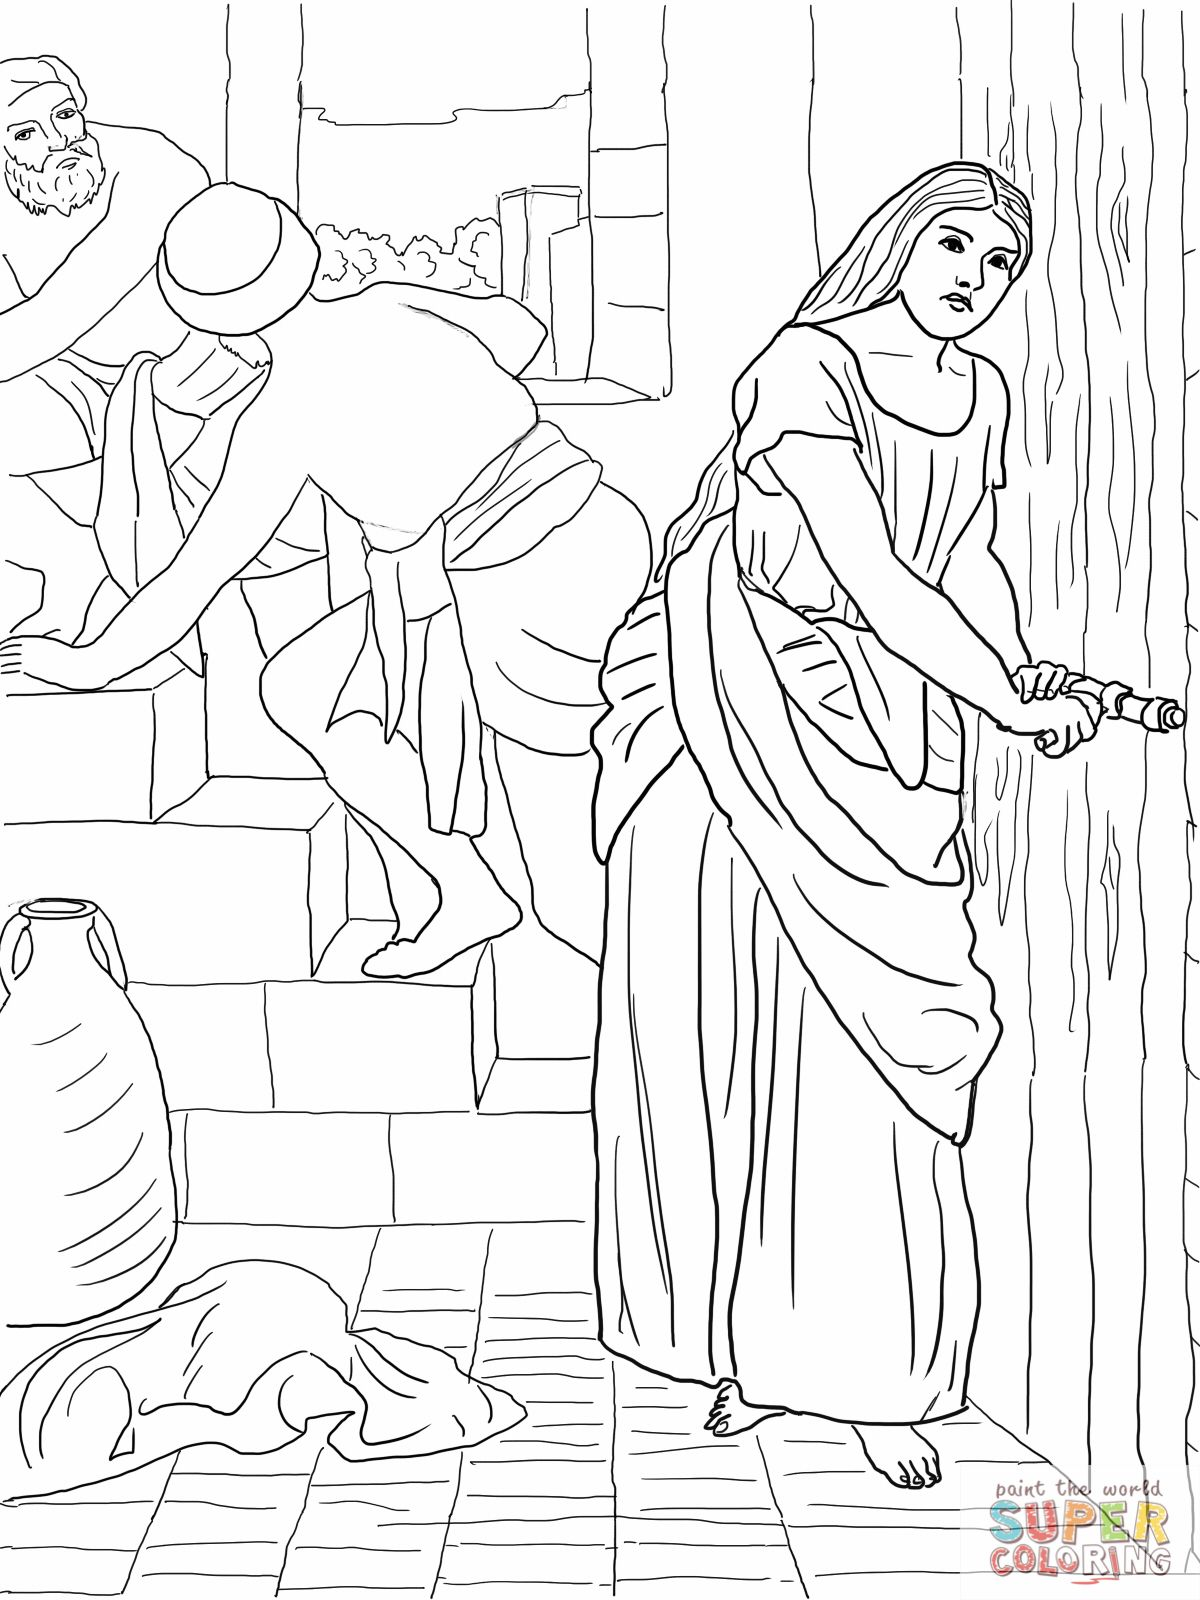 2 Rahab Hides The Spies Coloring Page Jpg 1200 1600 Pixels Bible